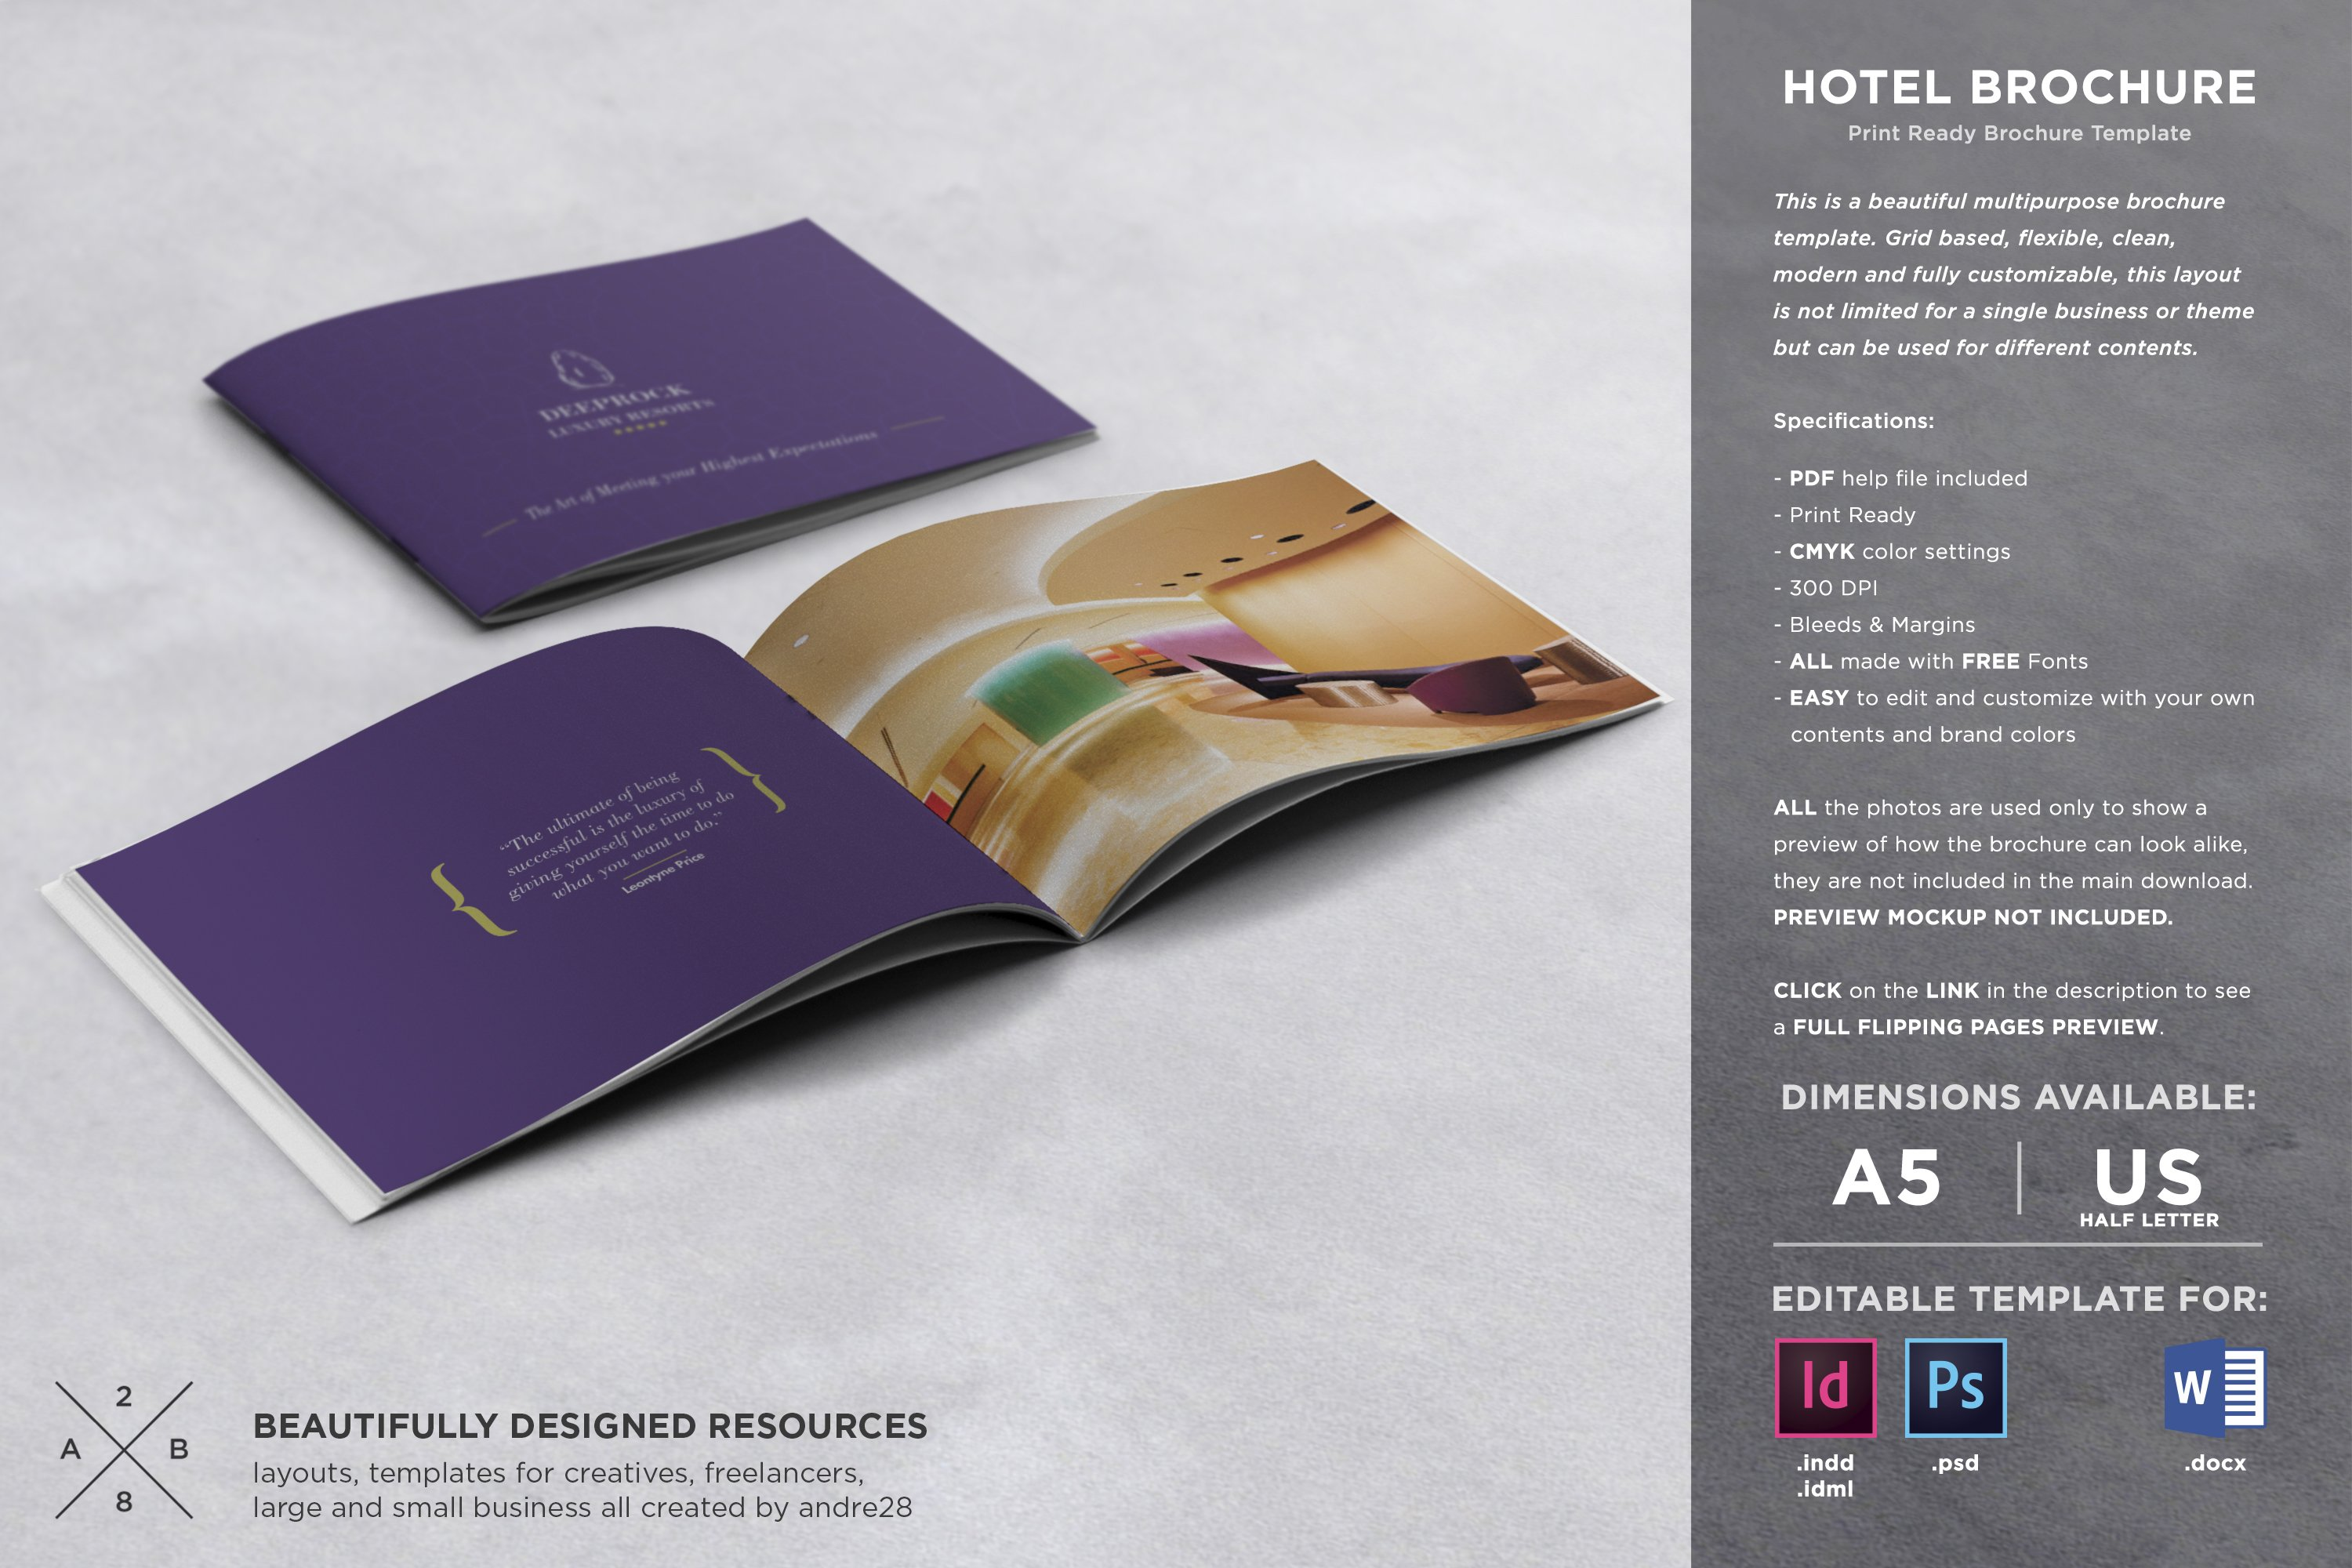 Hotel Brochure Template Photos Graphics Fonts Themes Templates - Hotel brochure template